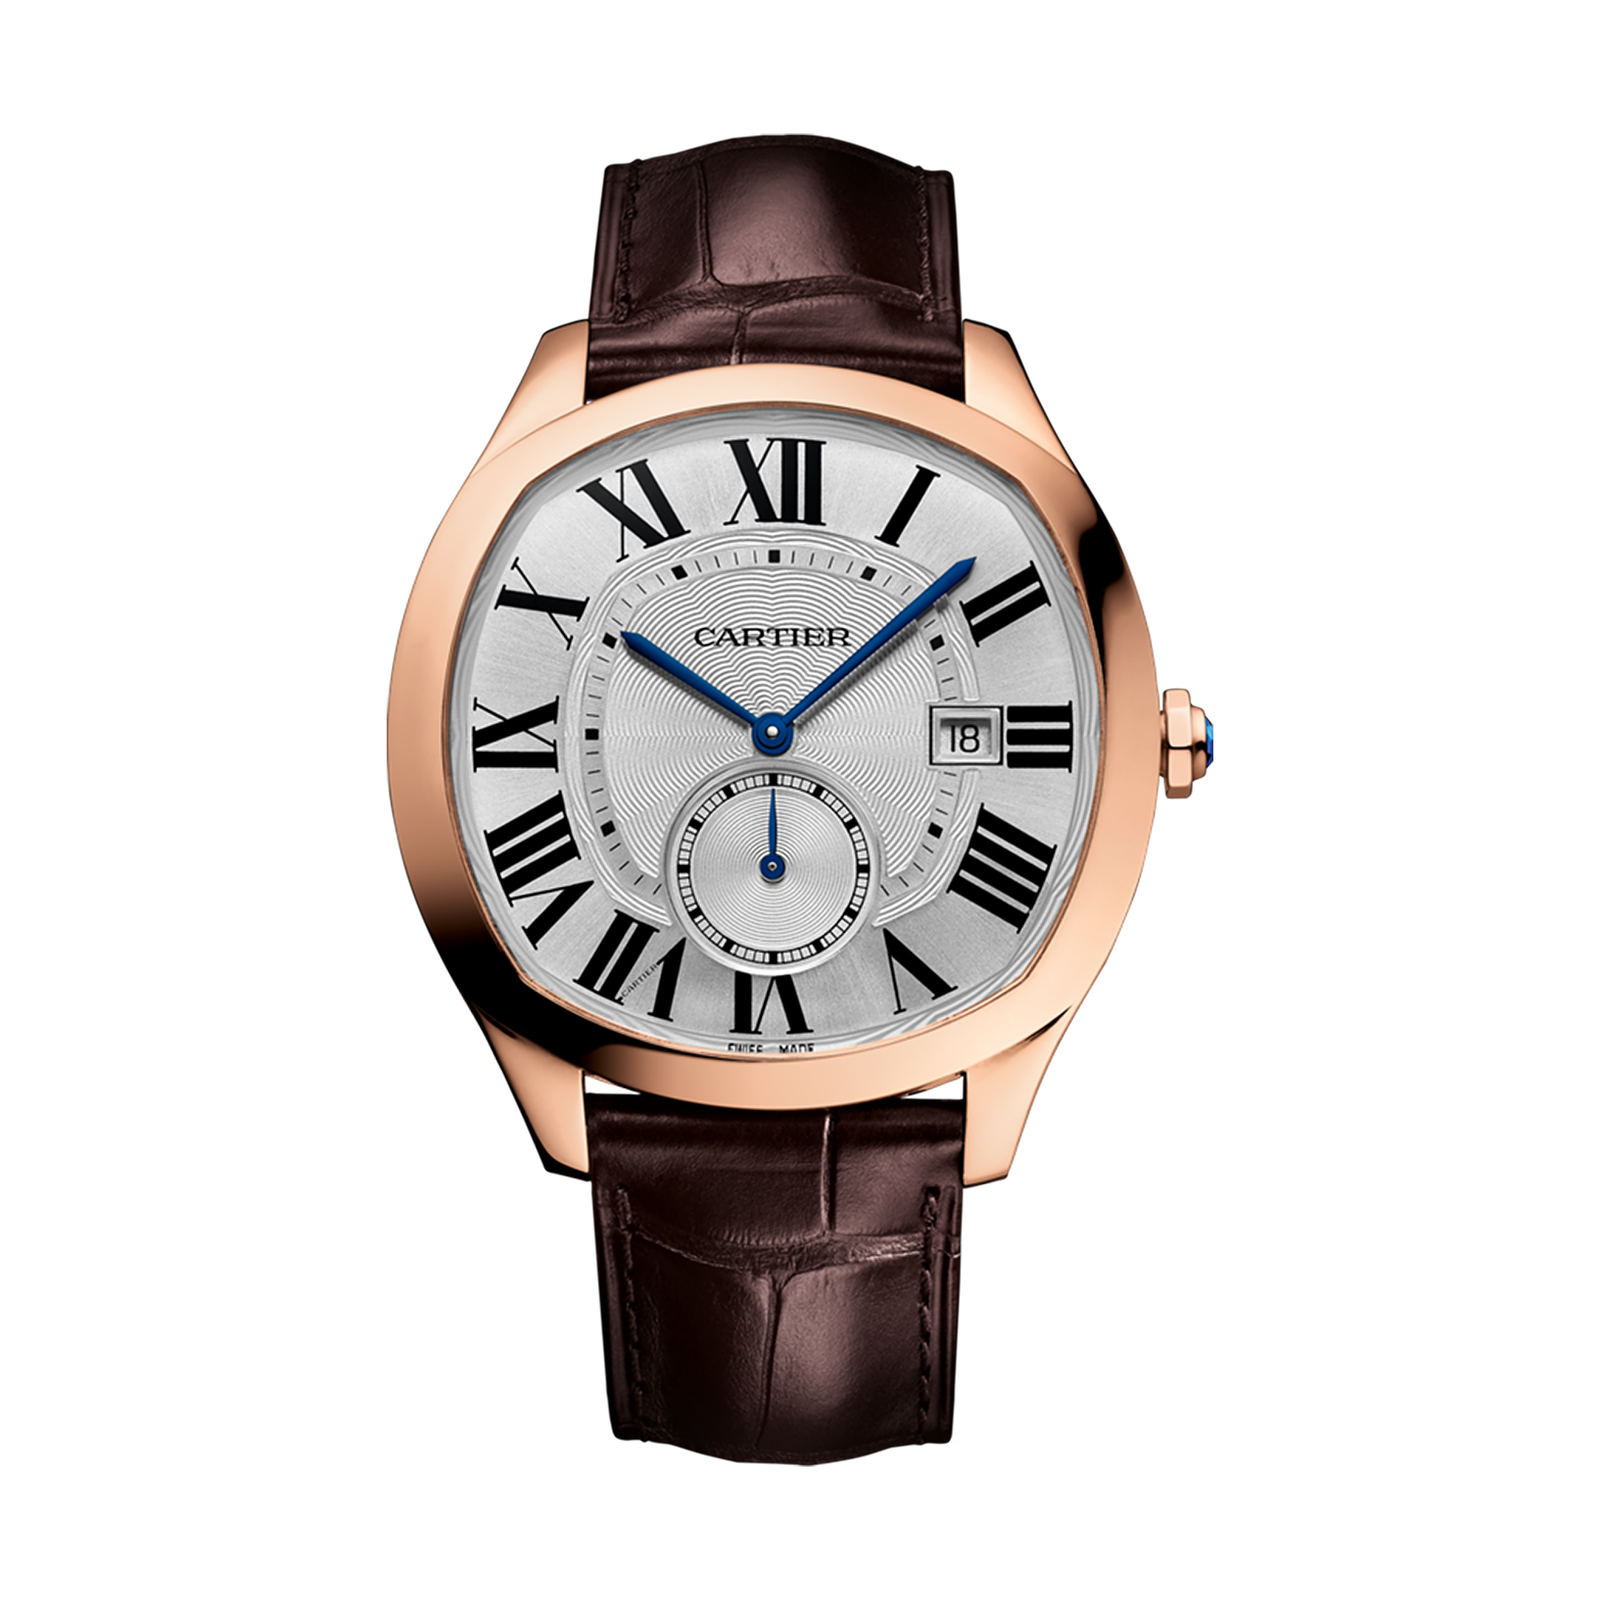 Cartier Drive de Cartier watch, 40 mm